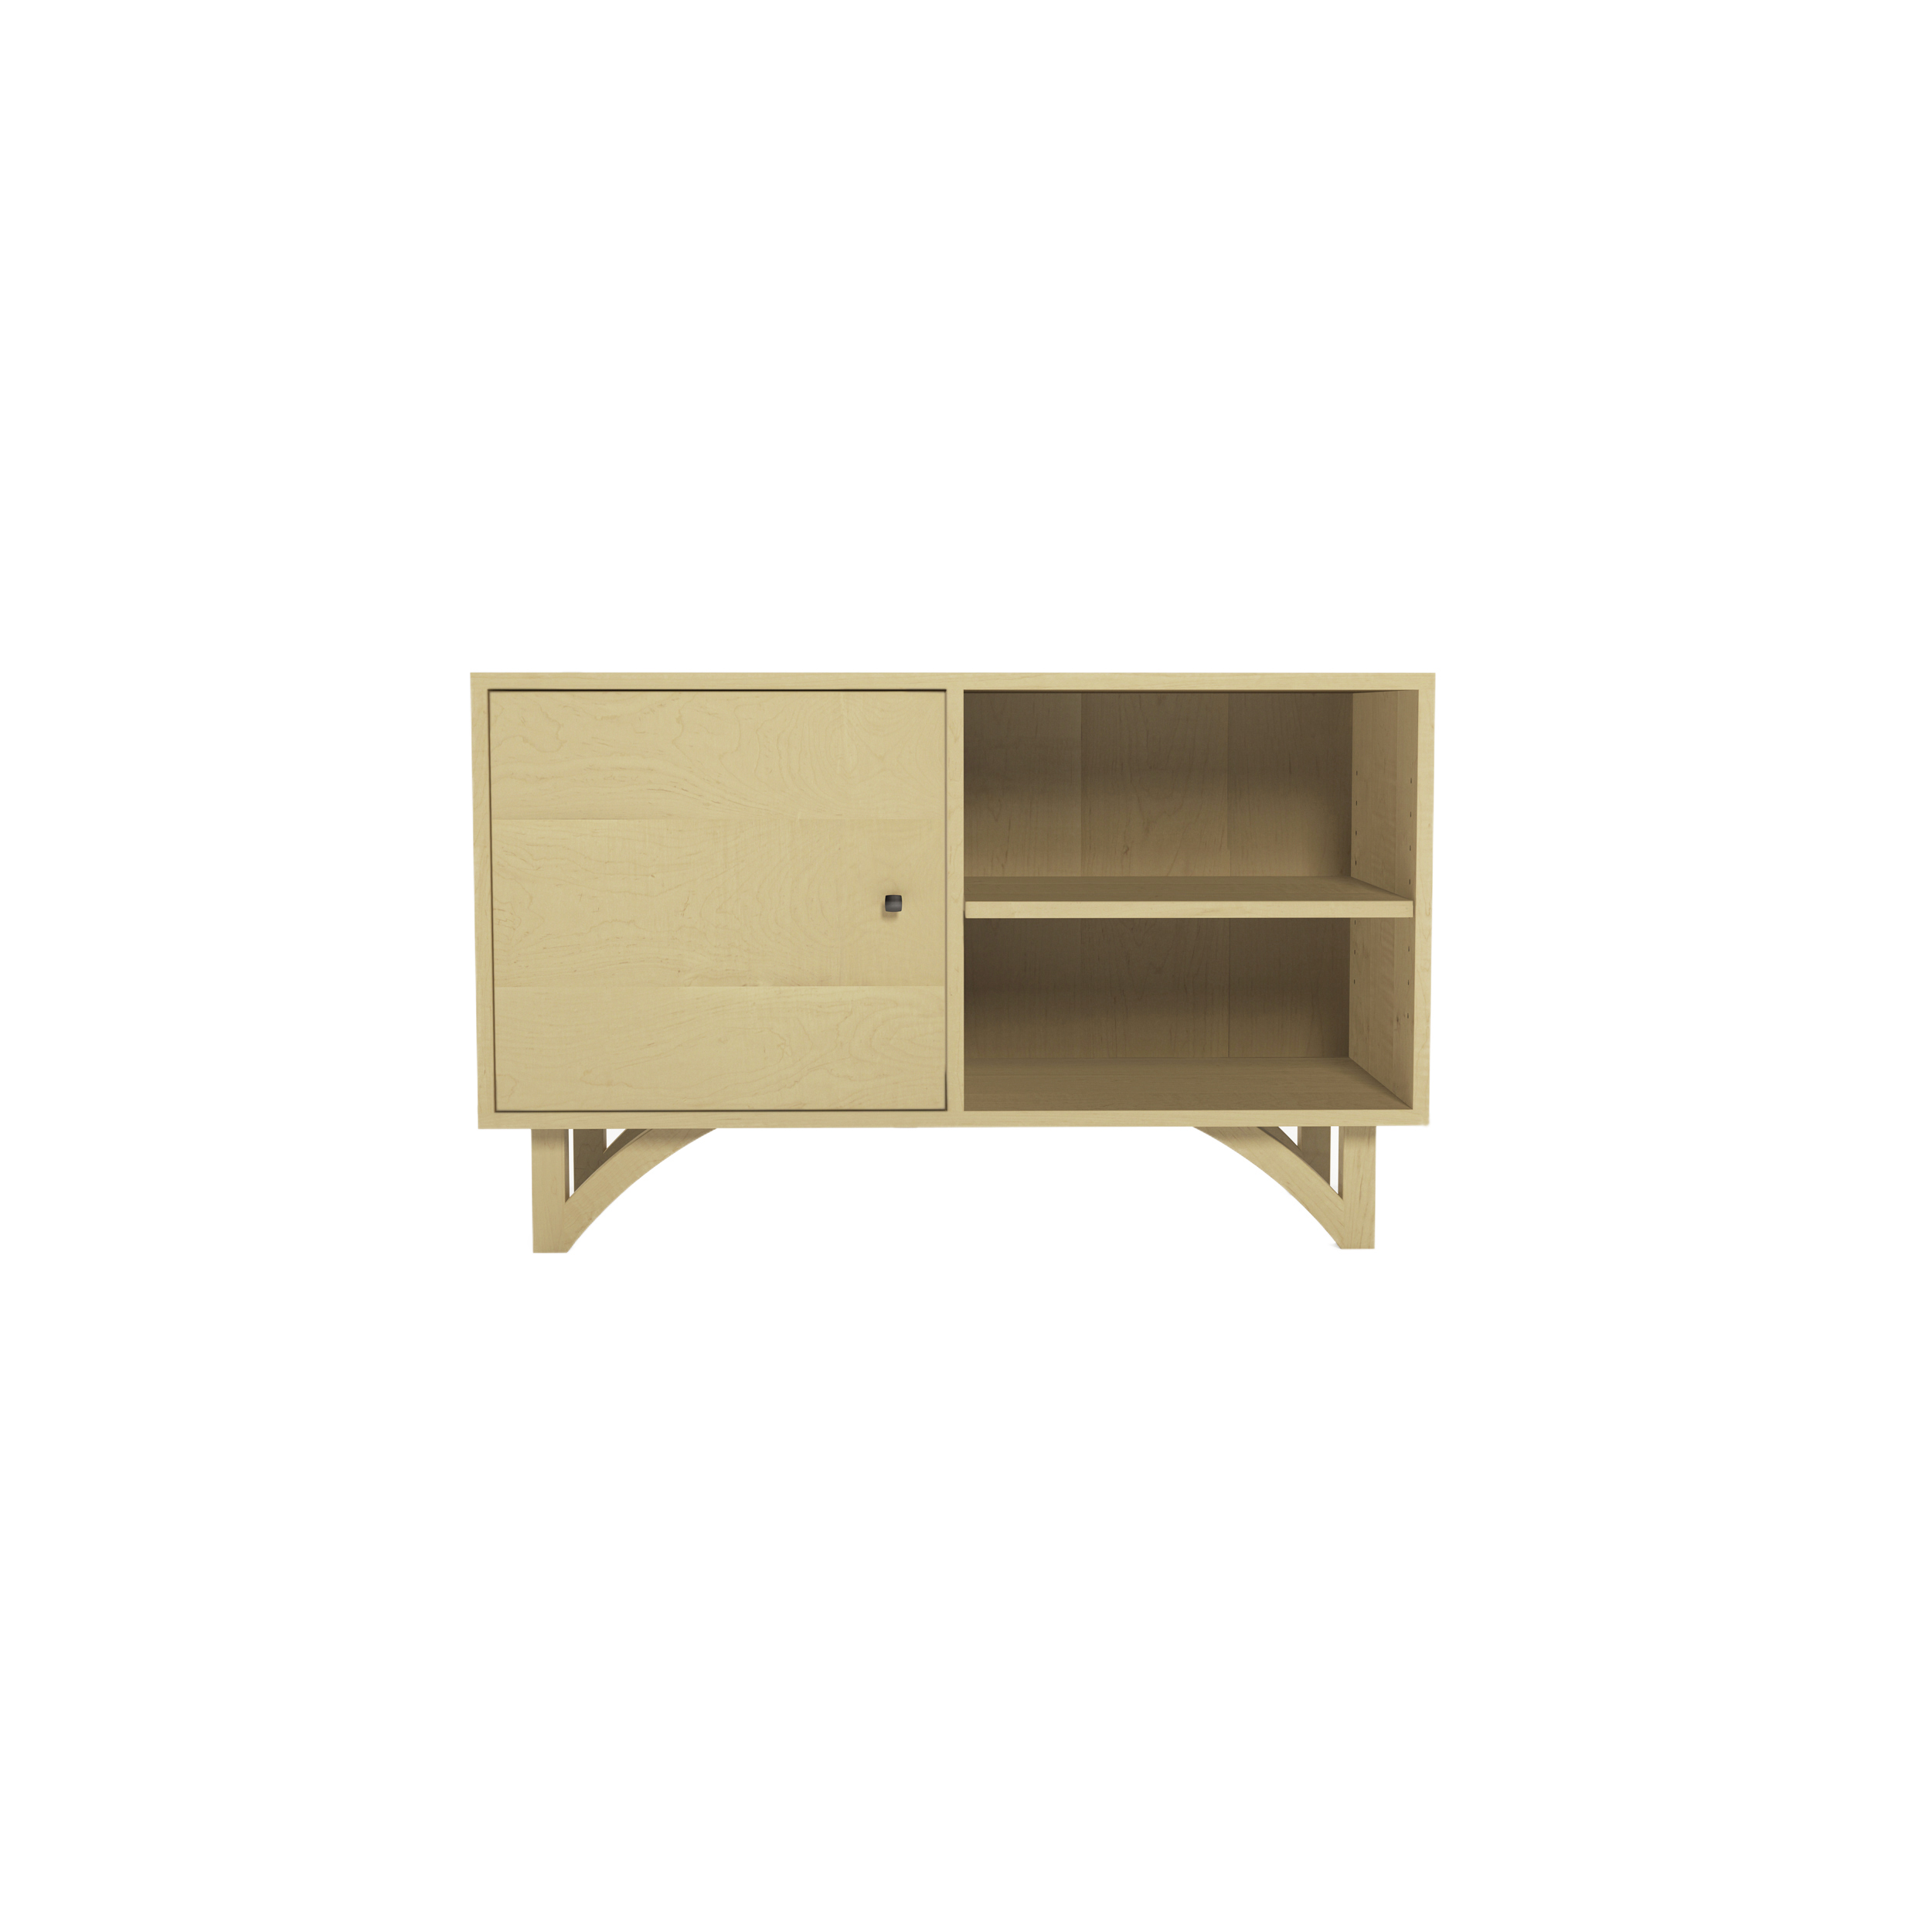 Series 454 Media Cabinet With One Door At 42″ In Width